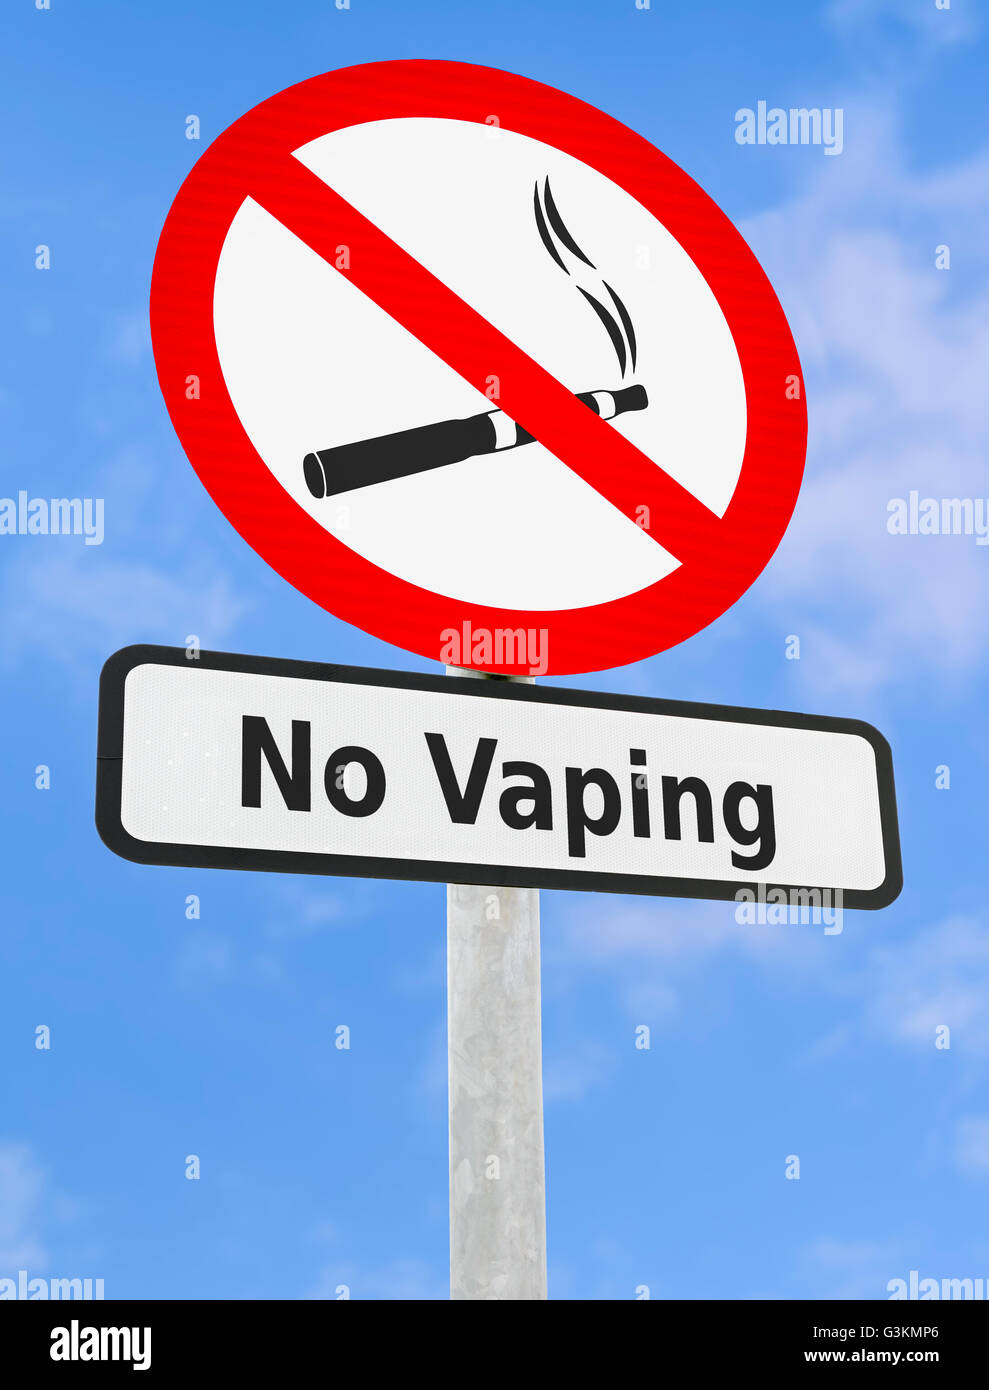 No Vaping warning sign. - Stock Image